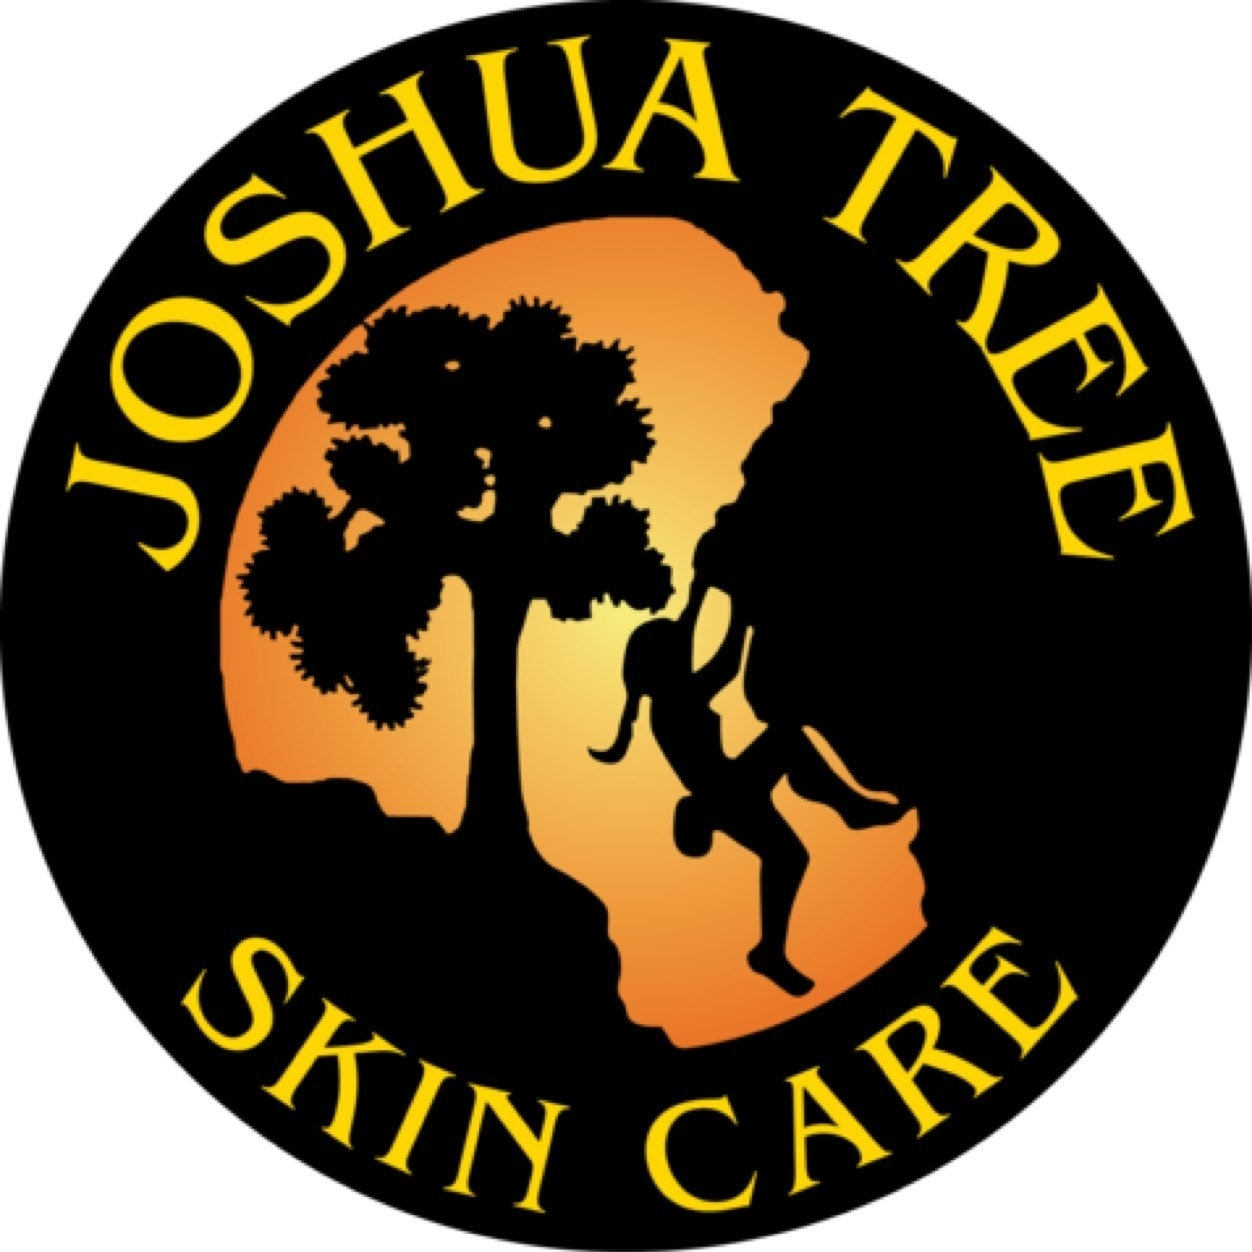 Joshua Tree Skin Care promo codes